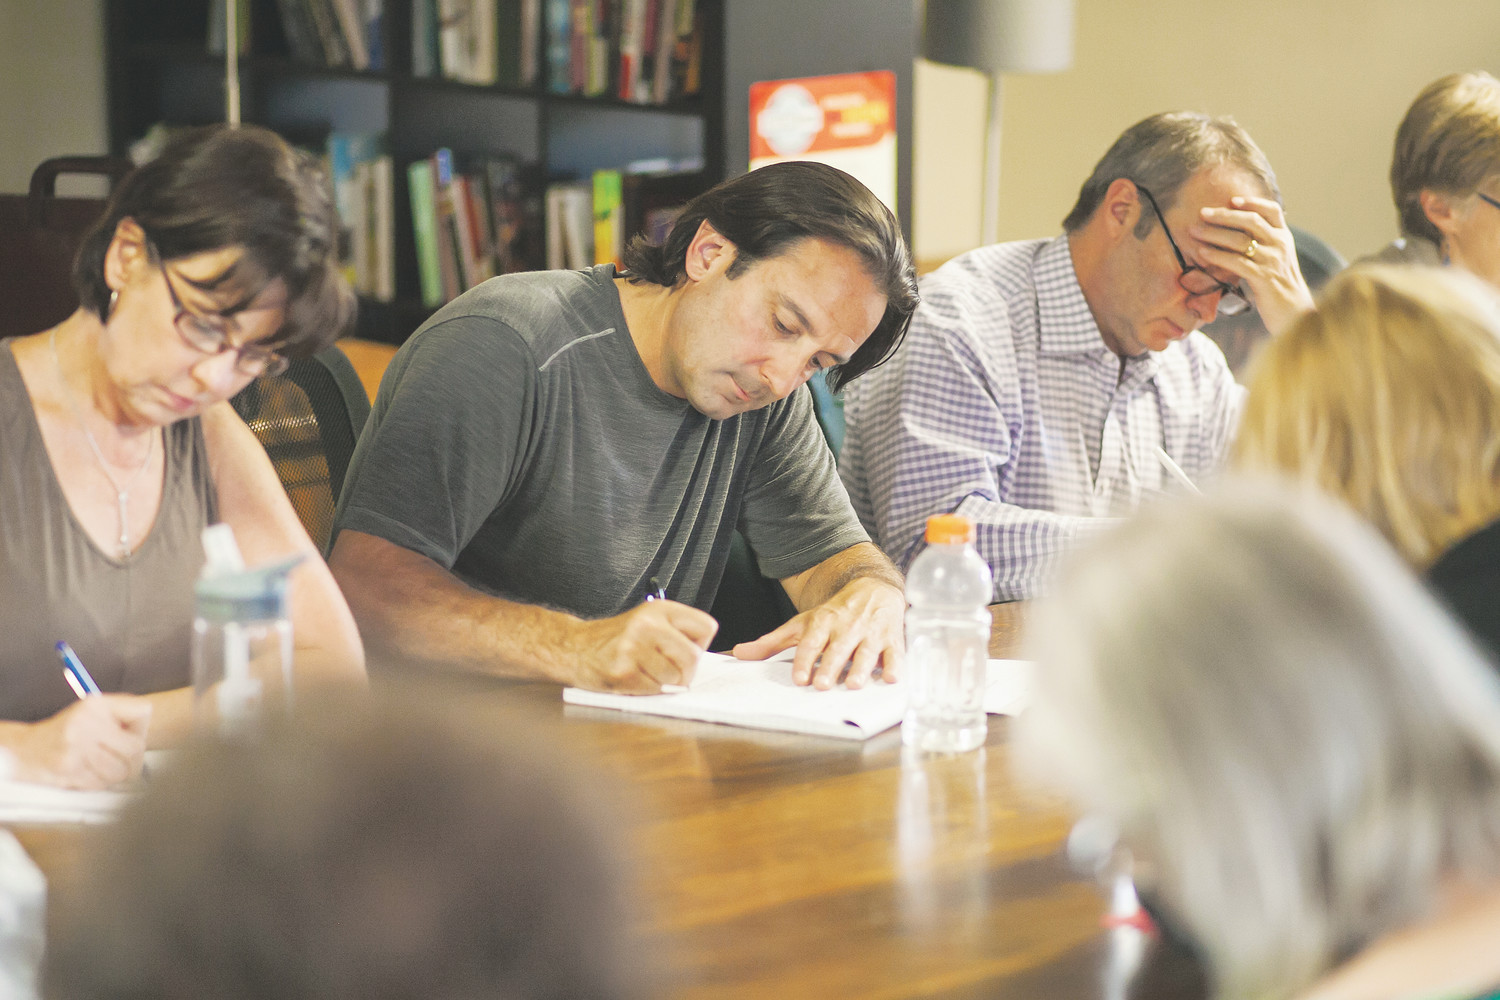 For 20 years, Lighthouse Writers Workshop has called up some of the top local writing talents to teach thousands of amateur writers.